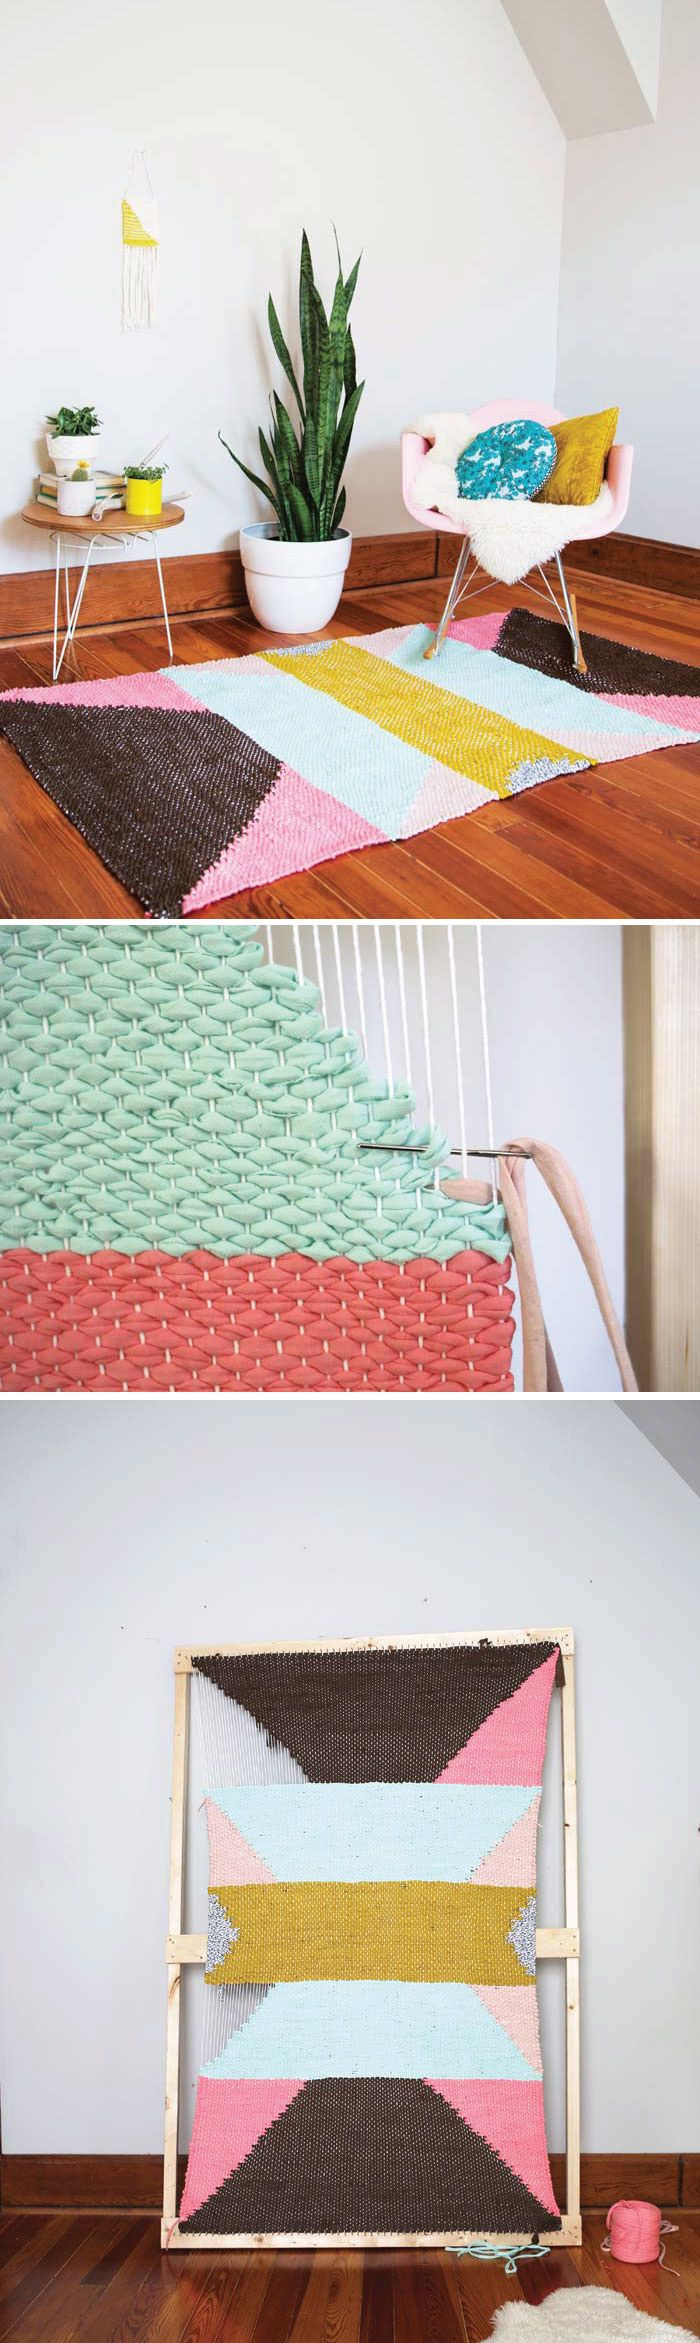 DIY Woven Rug by Rachel Denbow on the blog from her new book DIY Woven Art #DIYWovenArt